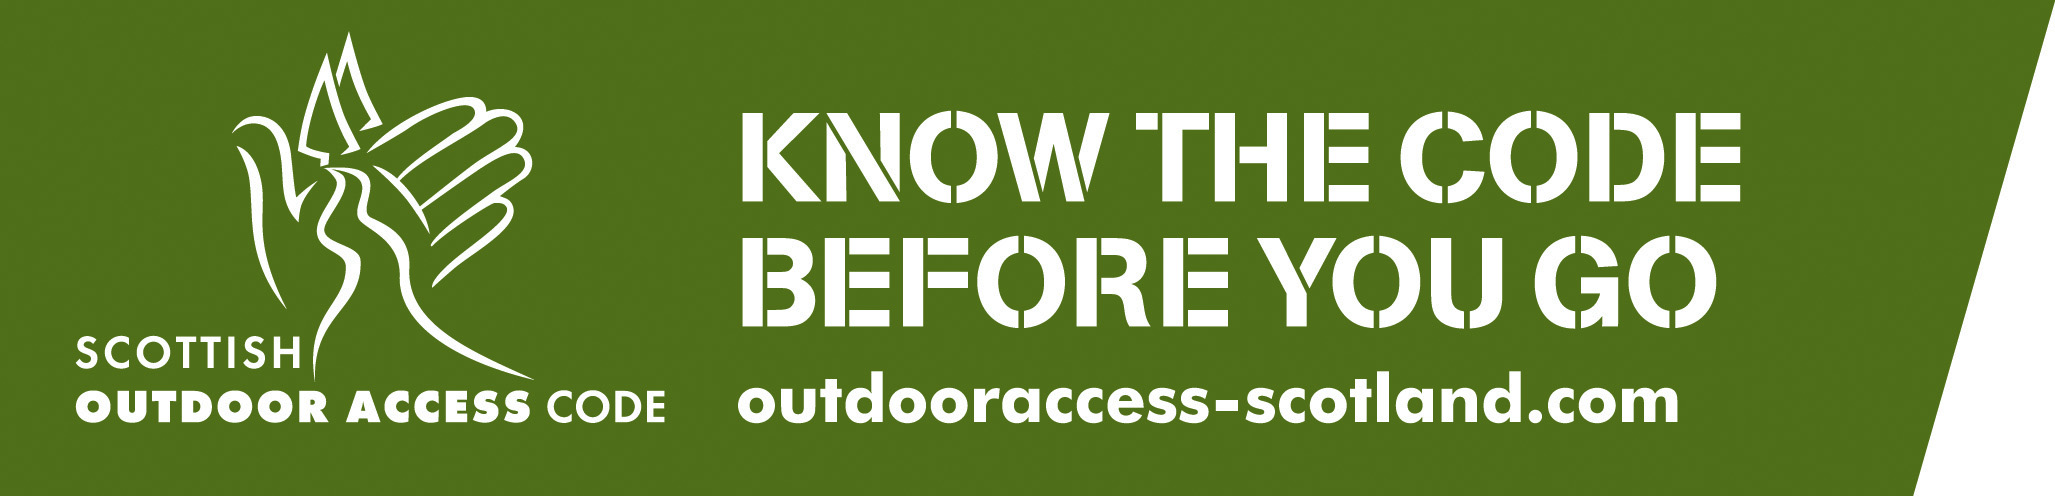 Scottish Outdoor Access Code